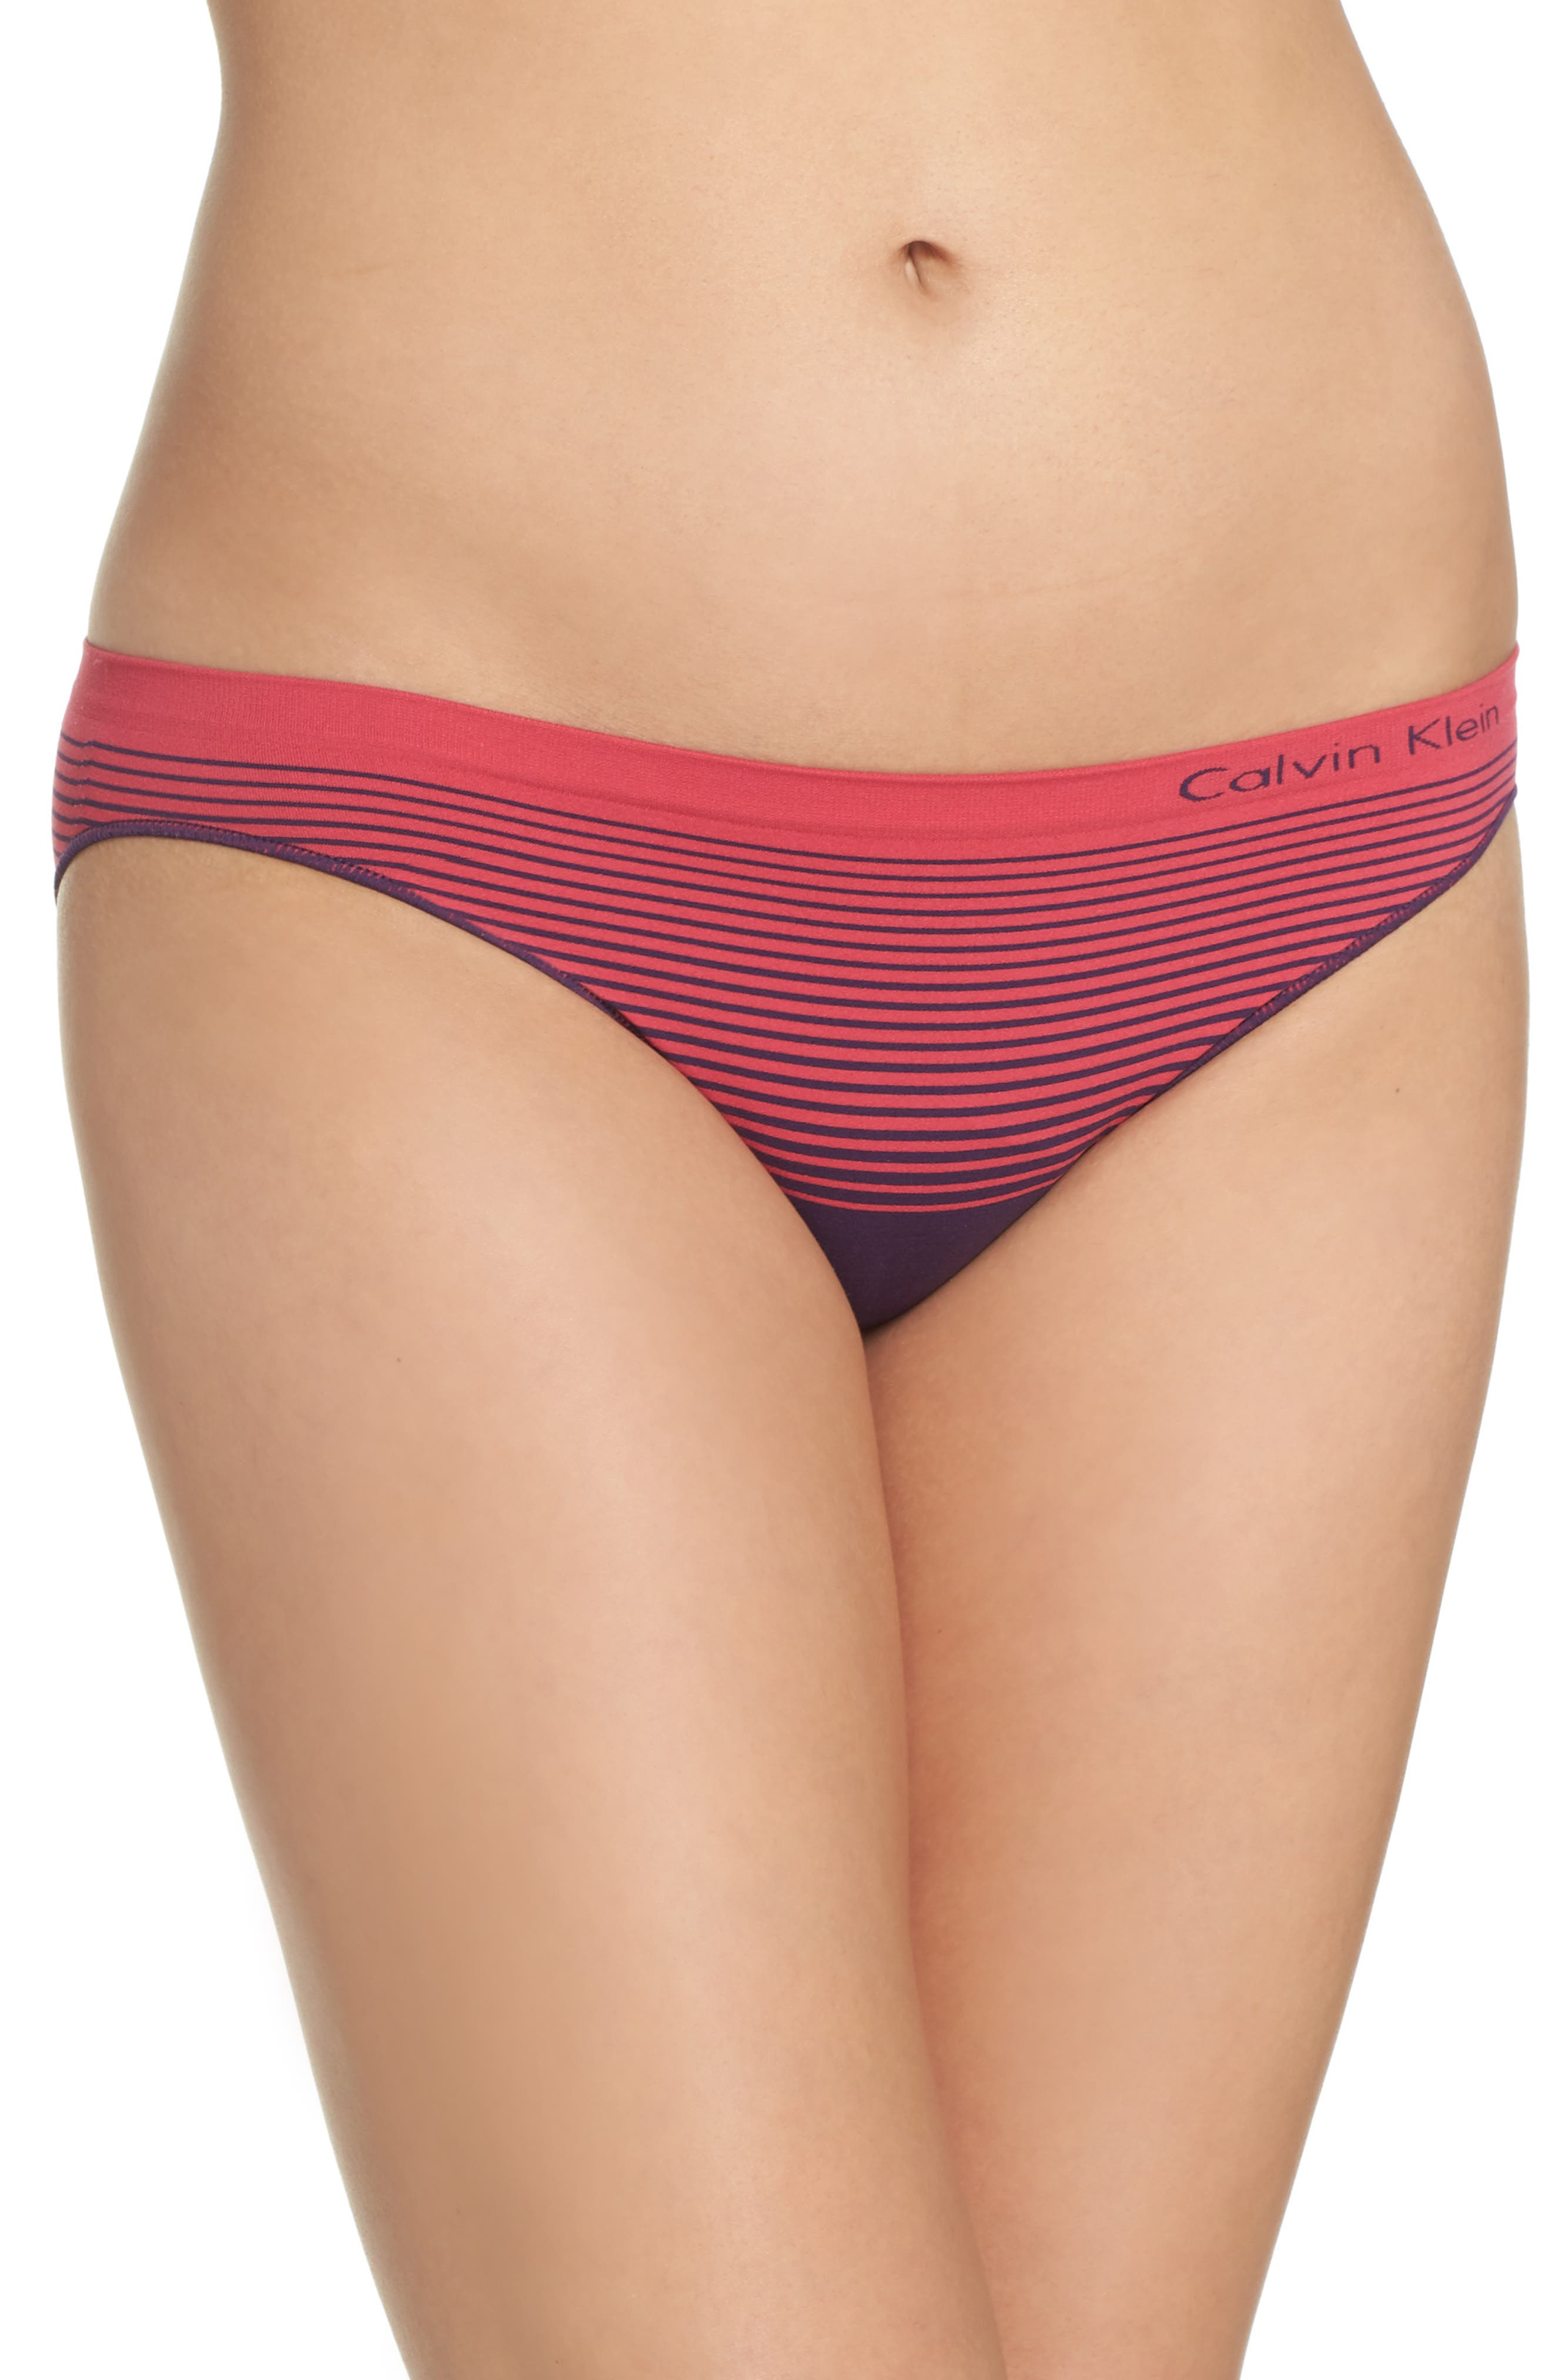 Calvin Klein Illusion Seamless Bikini Briefs (3 for $33)